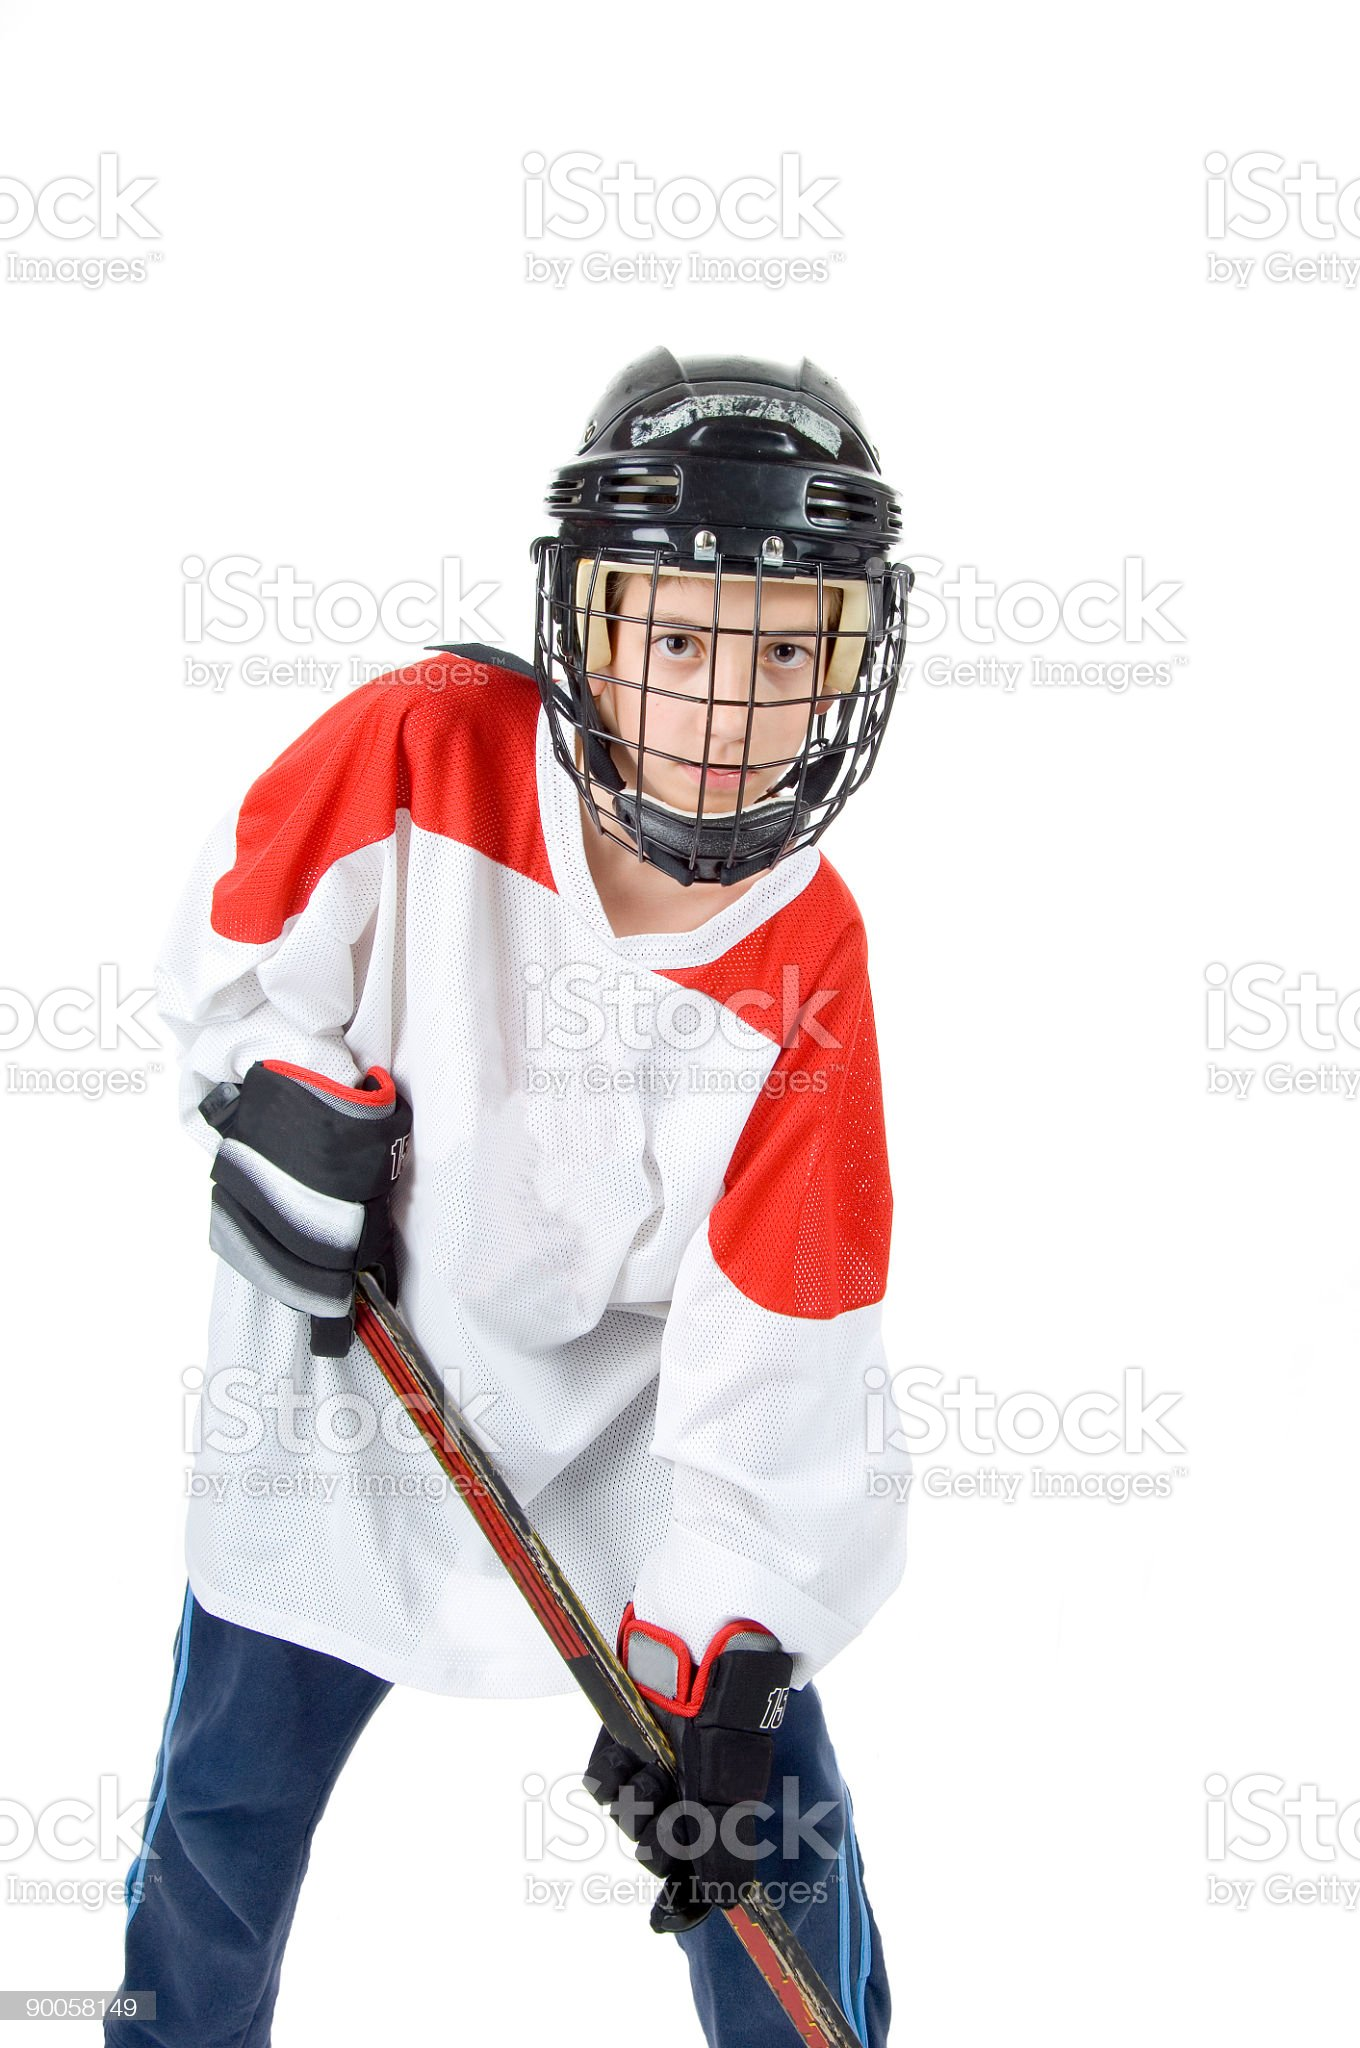 Hockey royalty-free stock photo